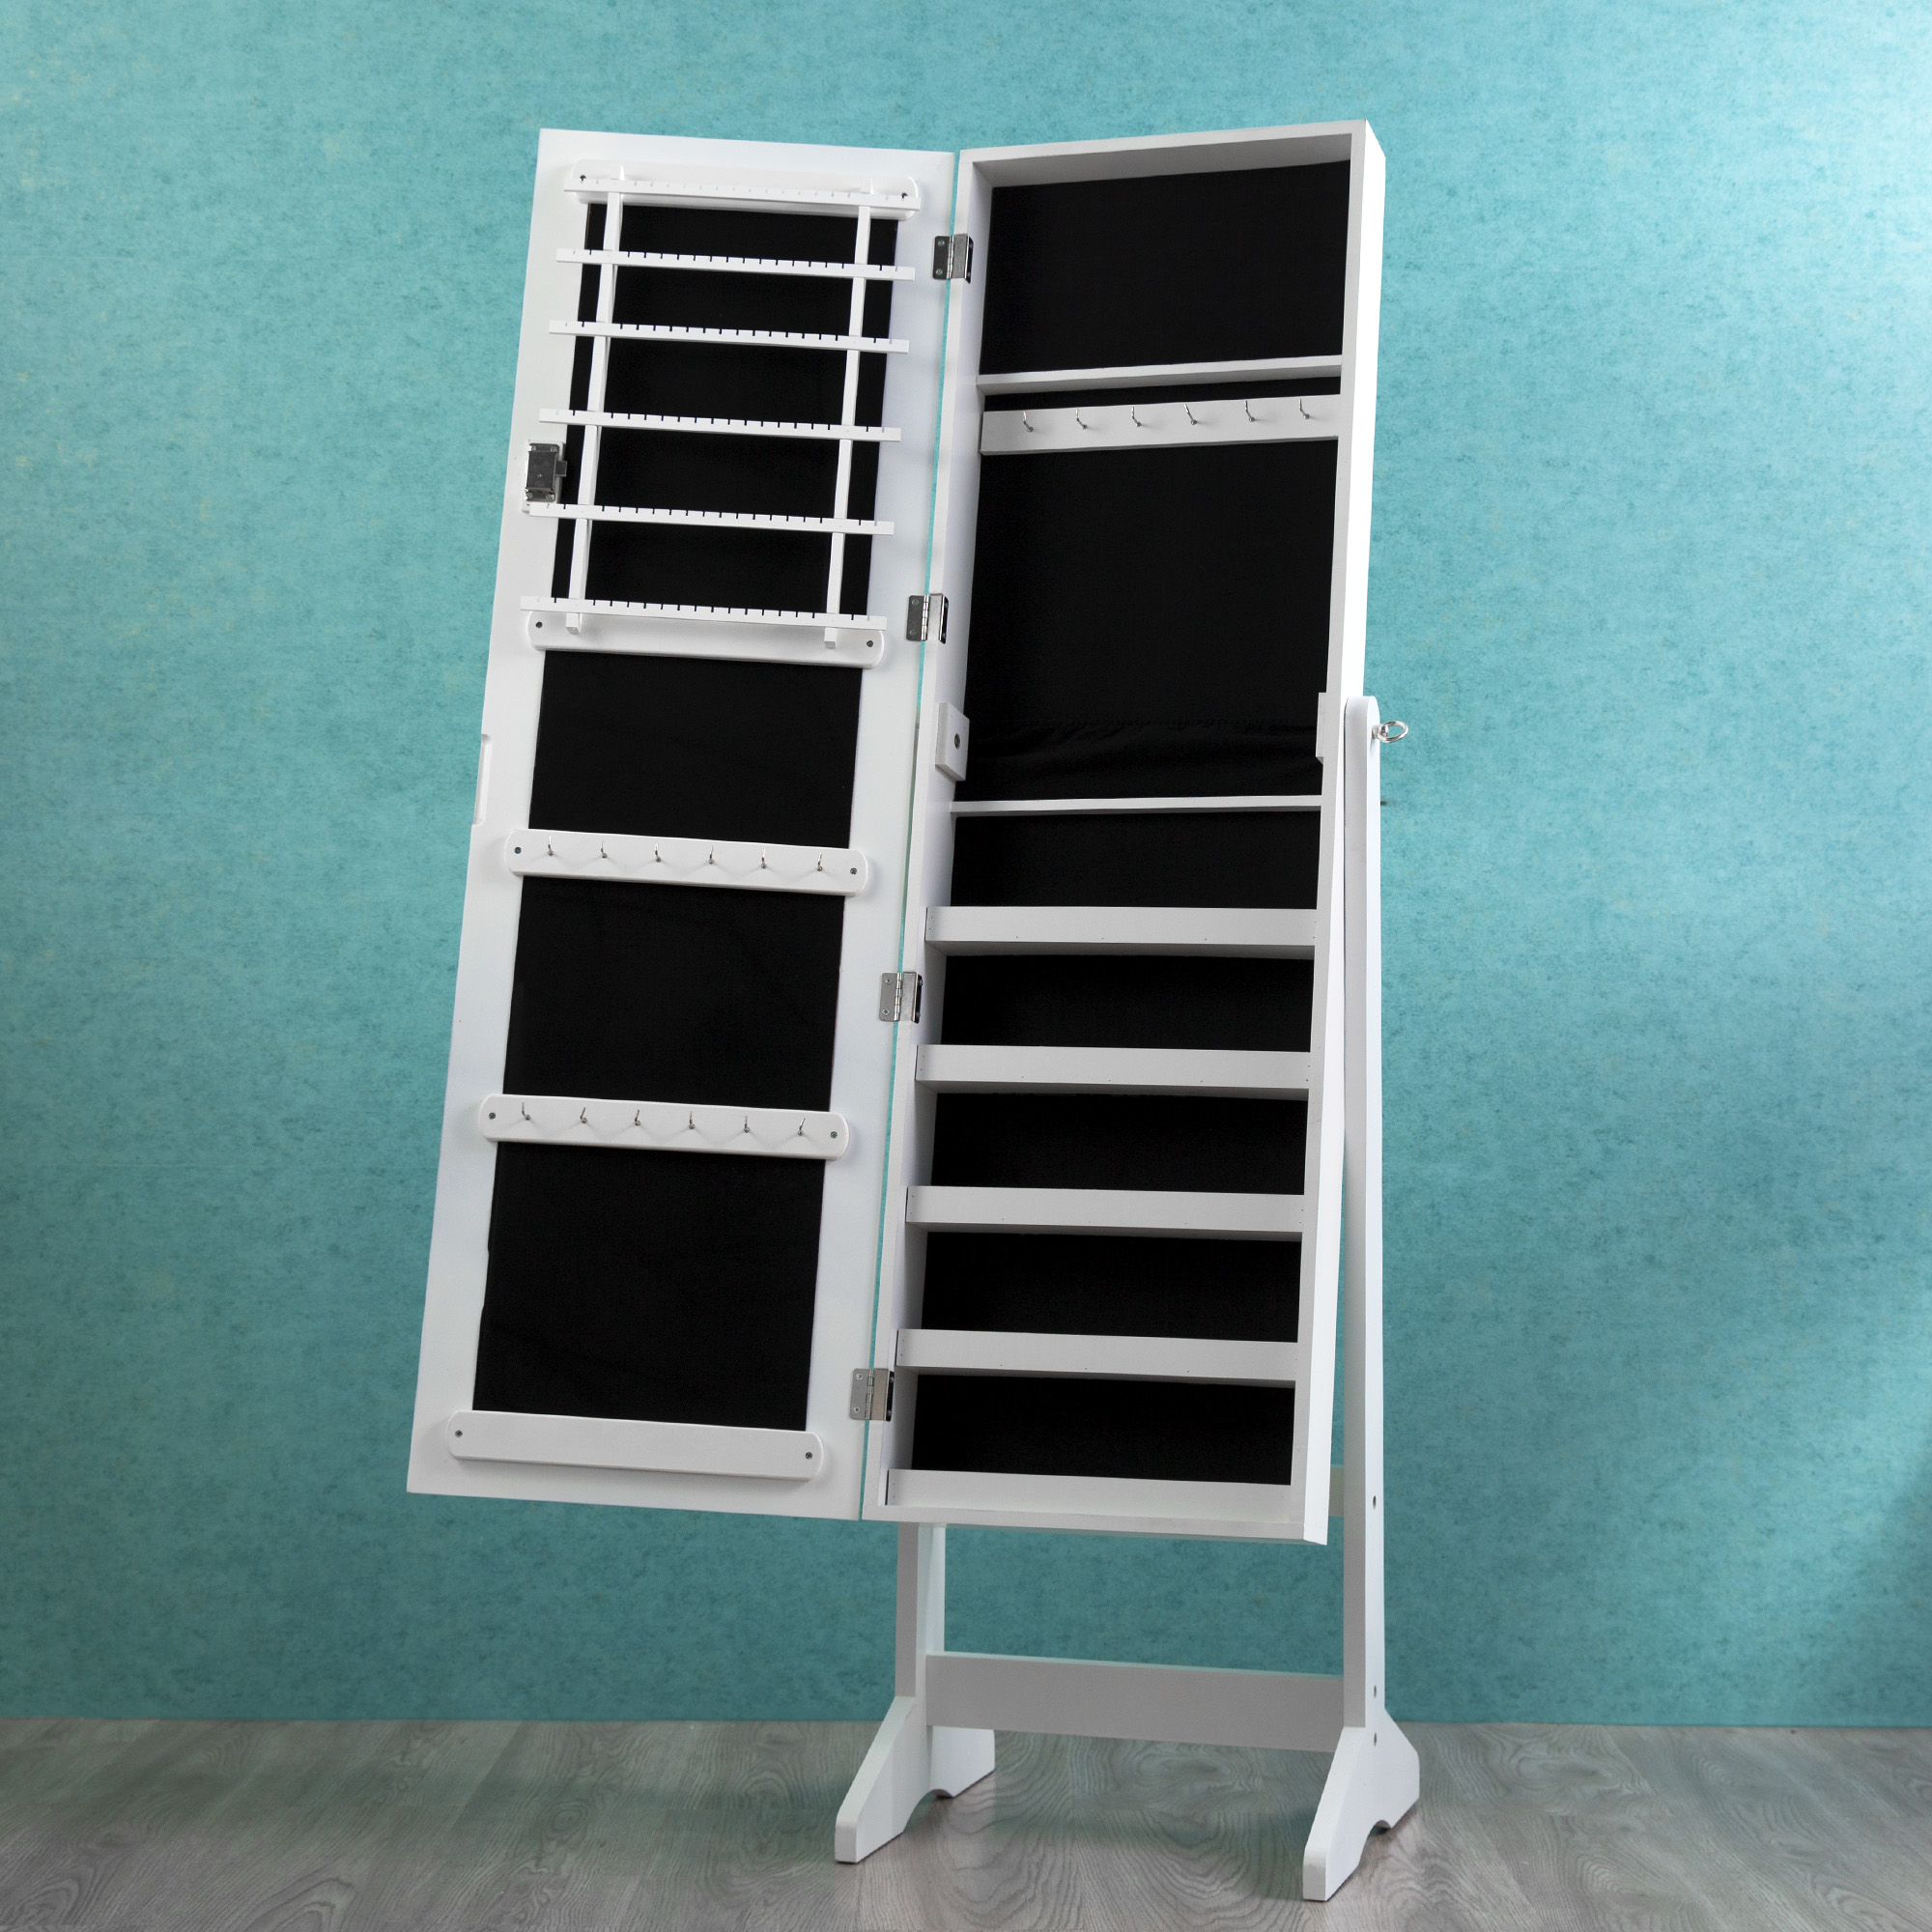 Lockable Mirrored Adjustable Jewelry Cabinet Armoire Organizer